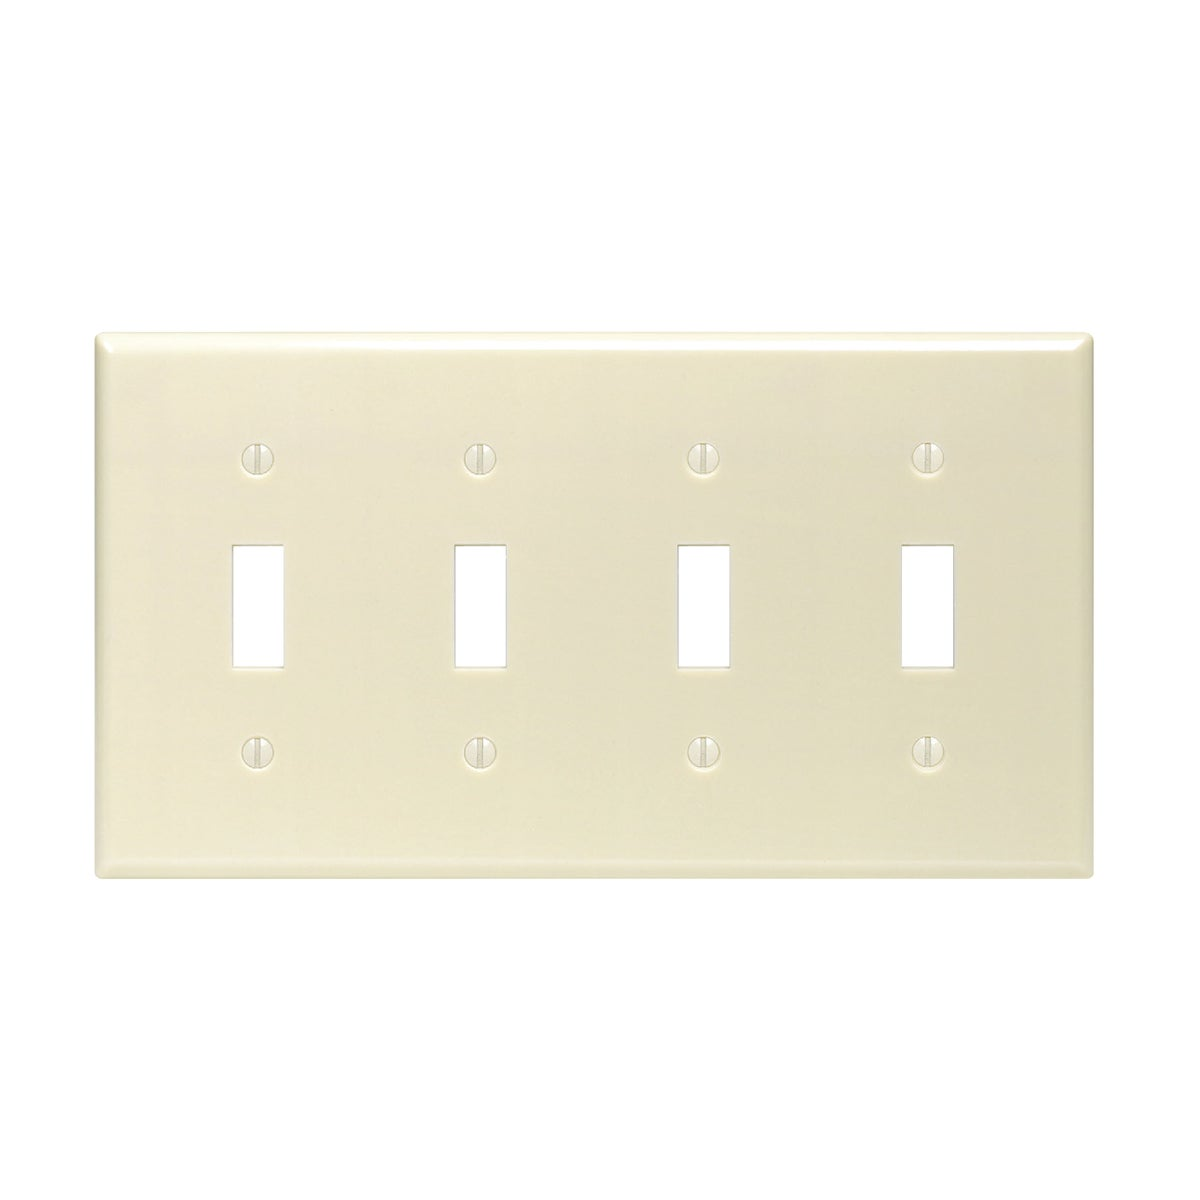 IV 4-TOGGLE WALL PLATE - 86012 by Leviton Mfg Co